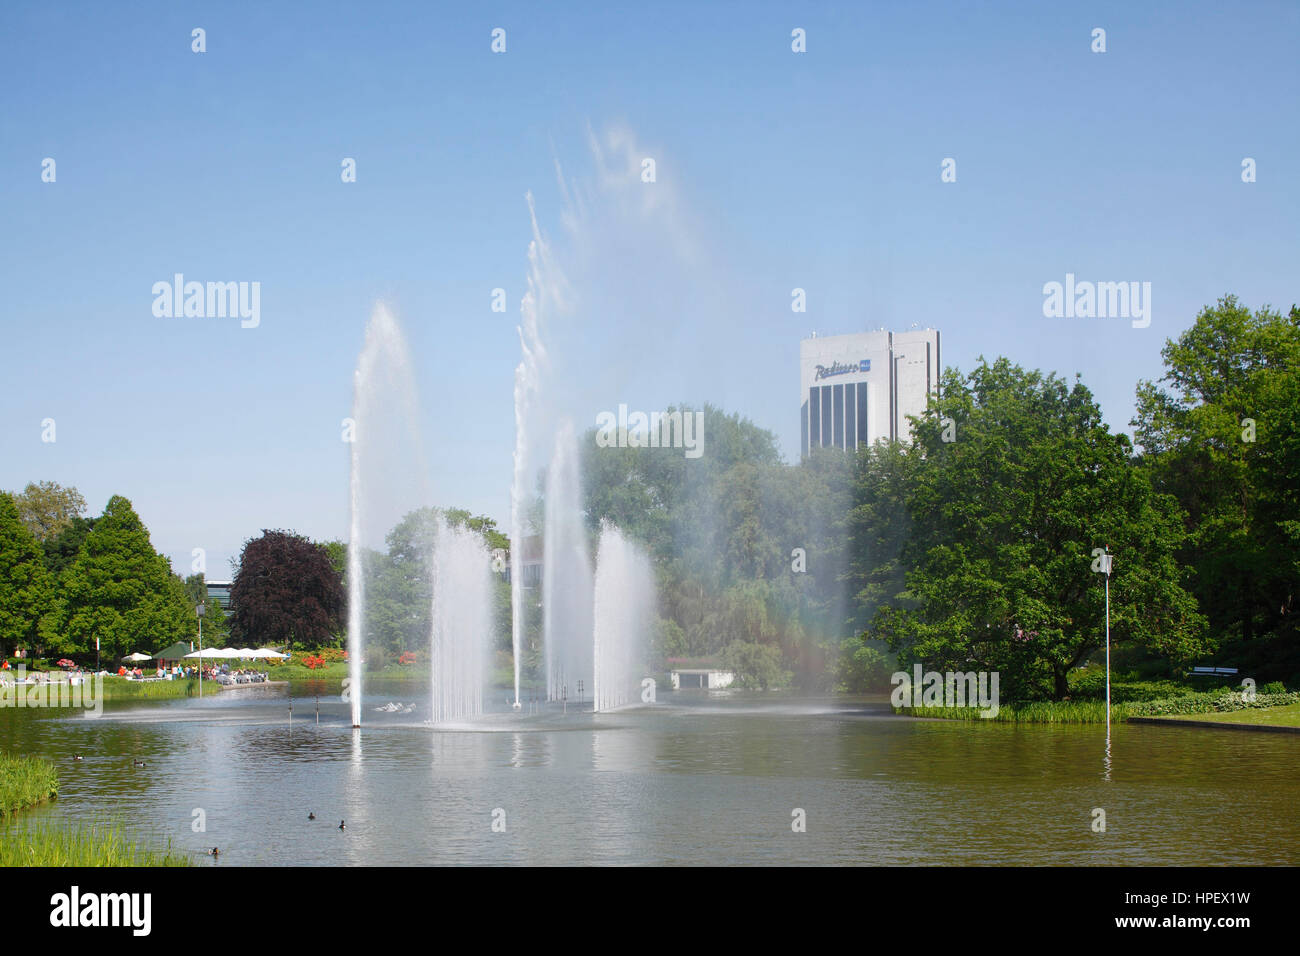 Pond, trick fountains, Radisson Blu Hotel and Park Planten un Blomen, Hamburg, Germany, Europe - Stock Image